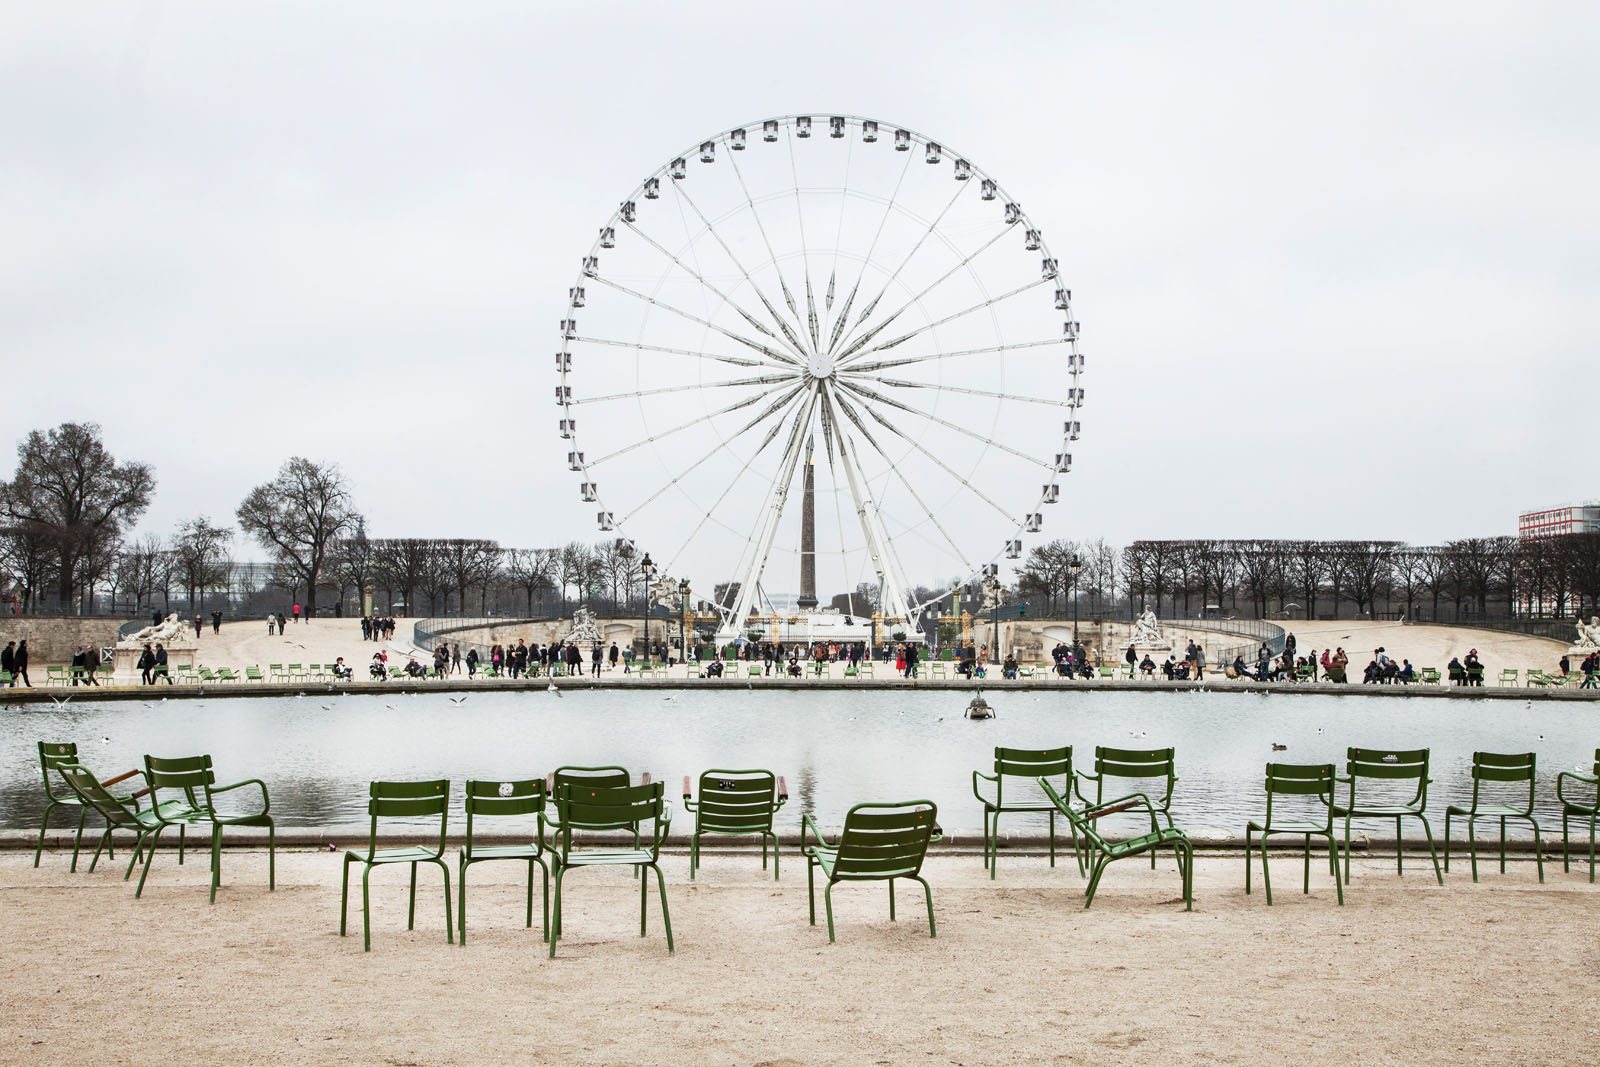 The Grand Basin at the Tuileries Garden